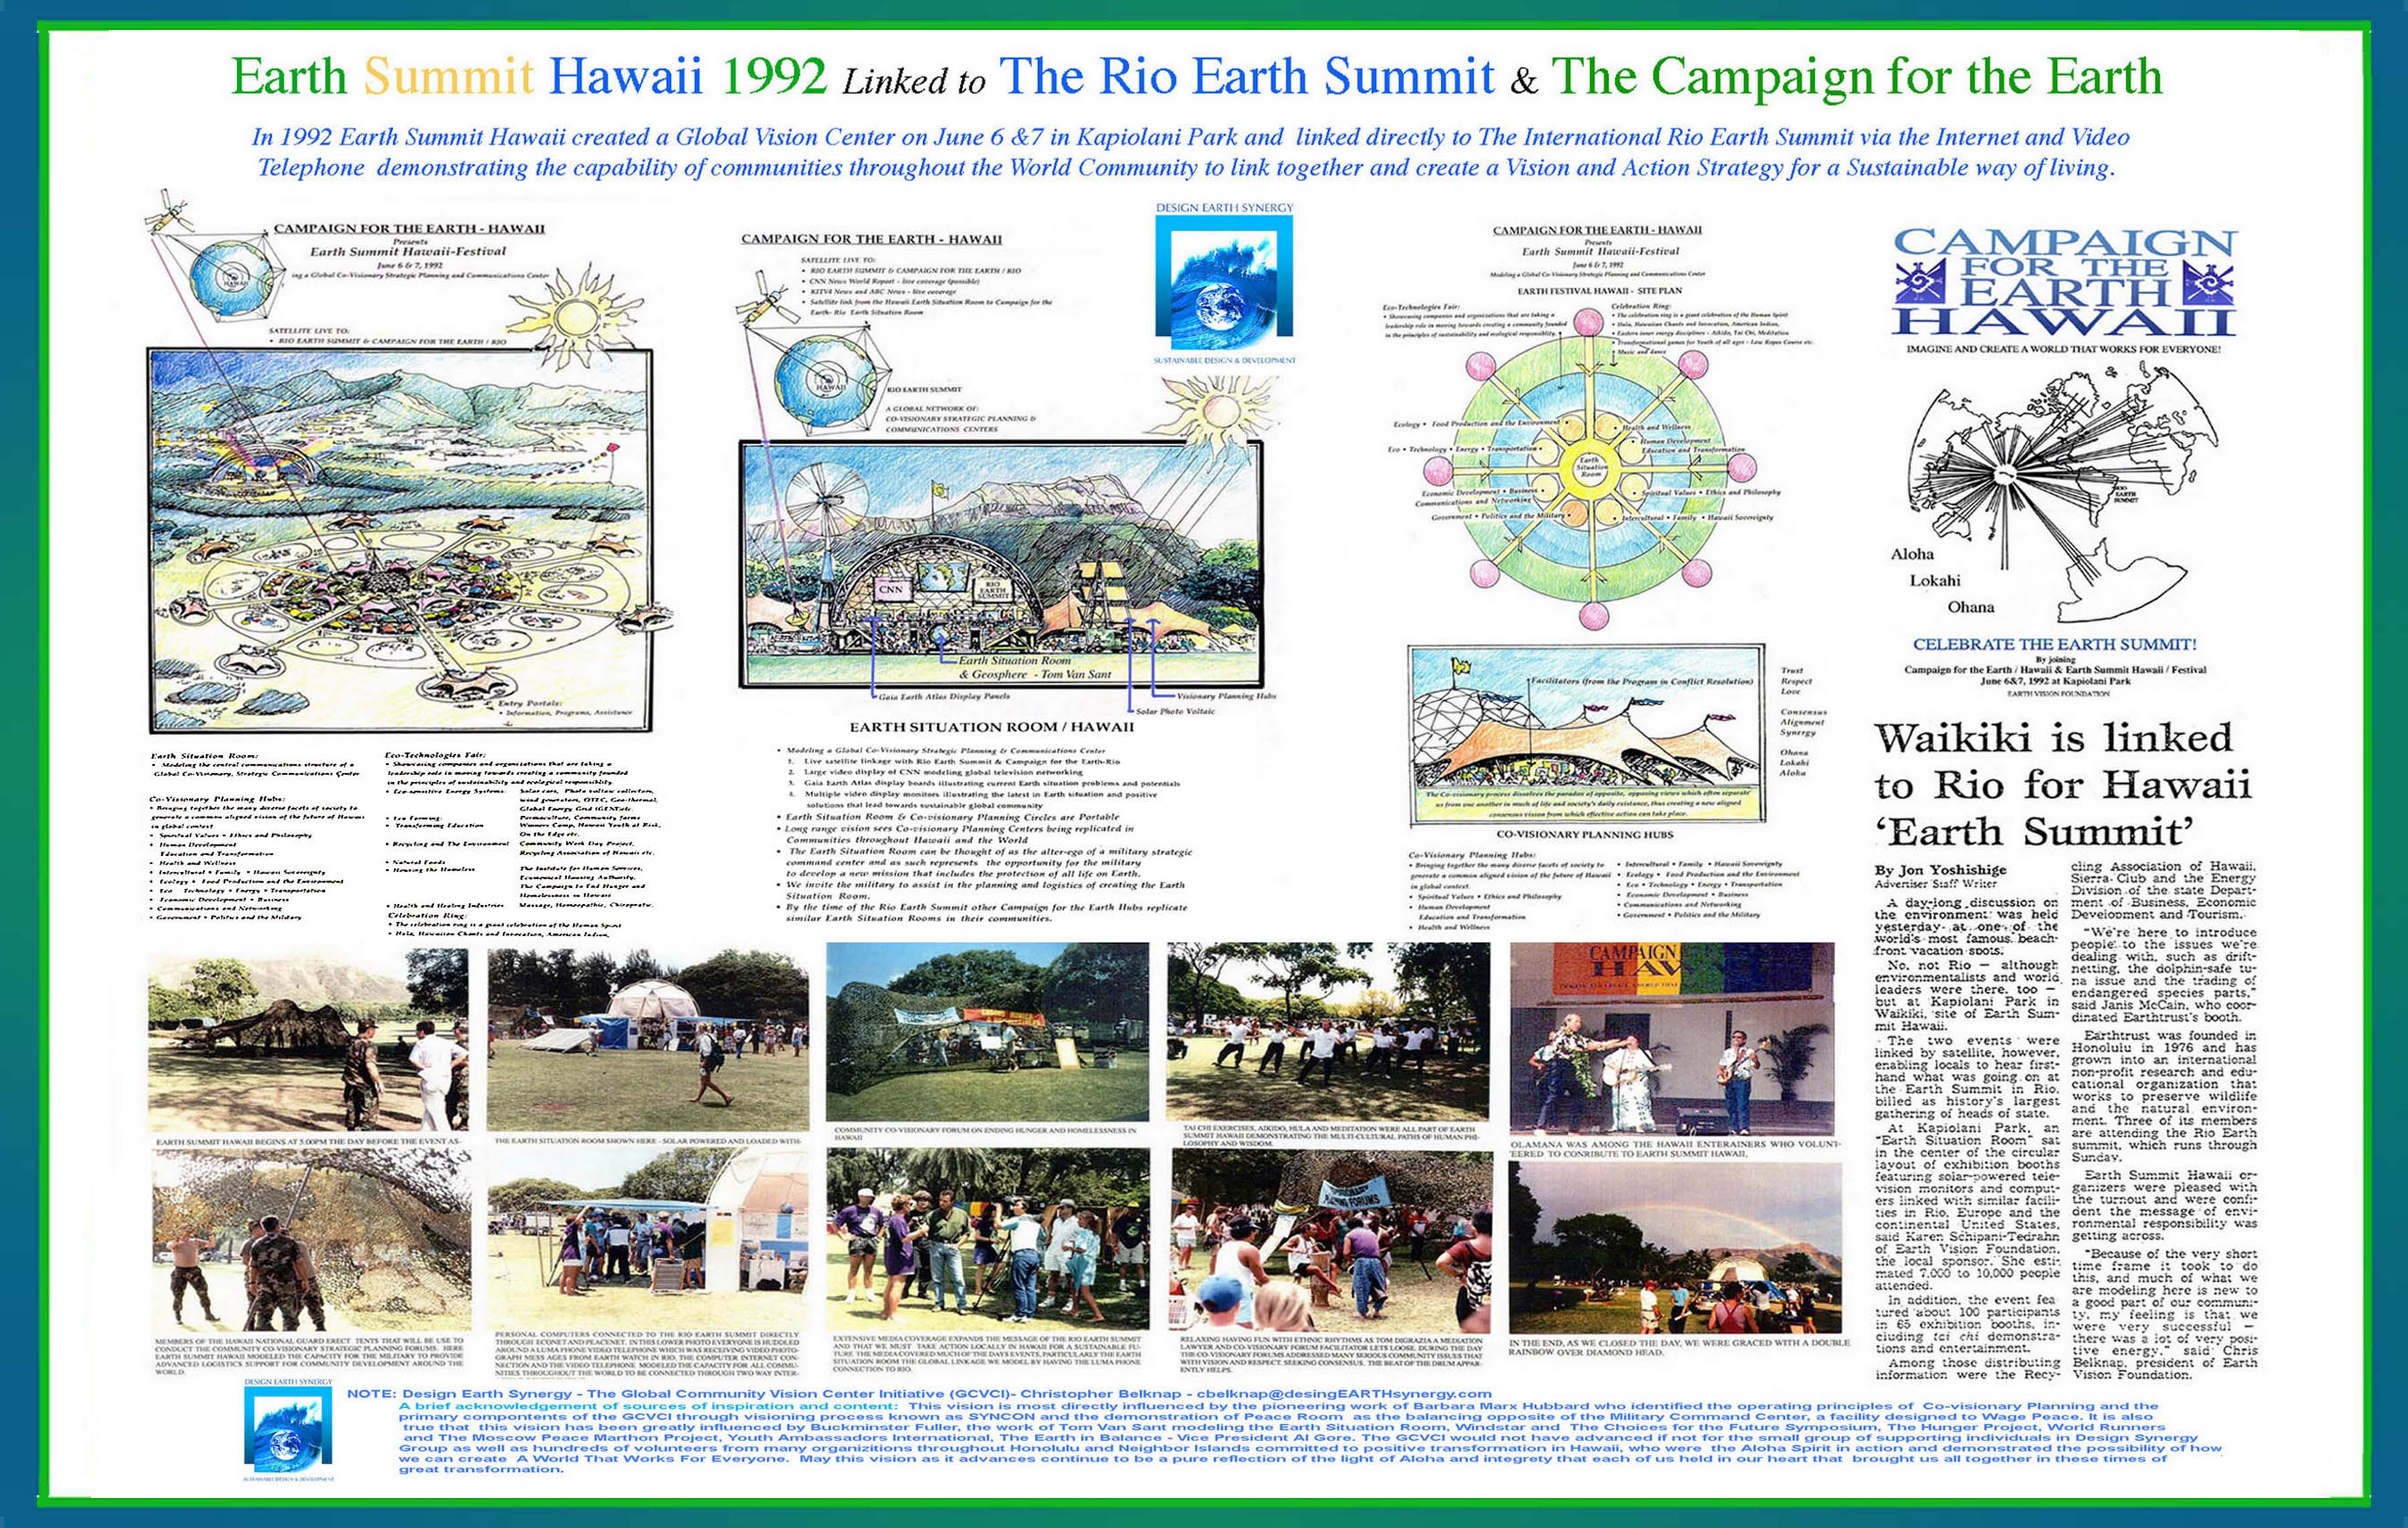 agenda 21 essay Agenda 21 was an idea that supported sustainable development it was introduced in the year 1992 at rio de janerio at the 'earth summit' glenn beck is a.